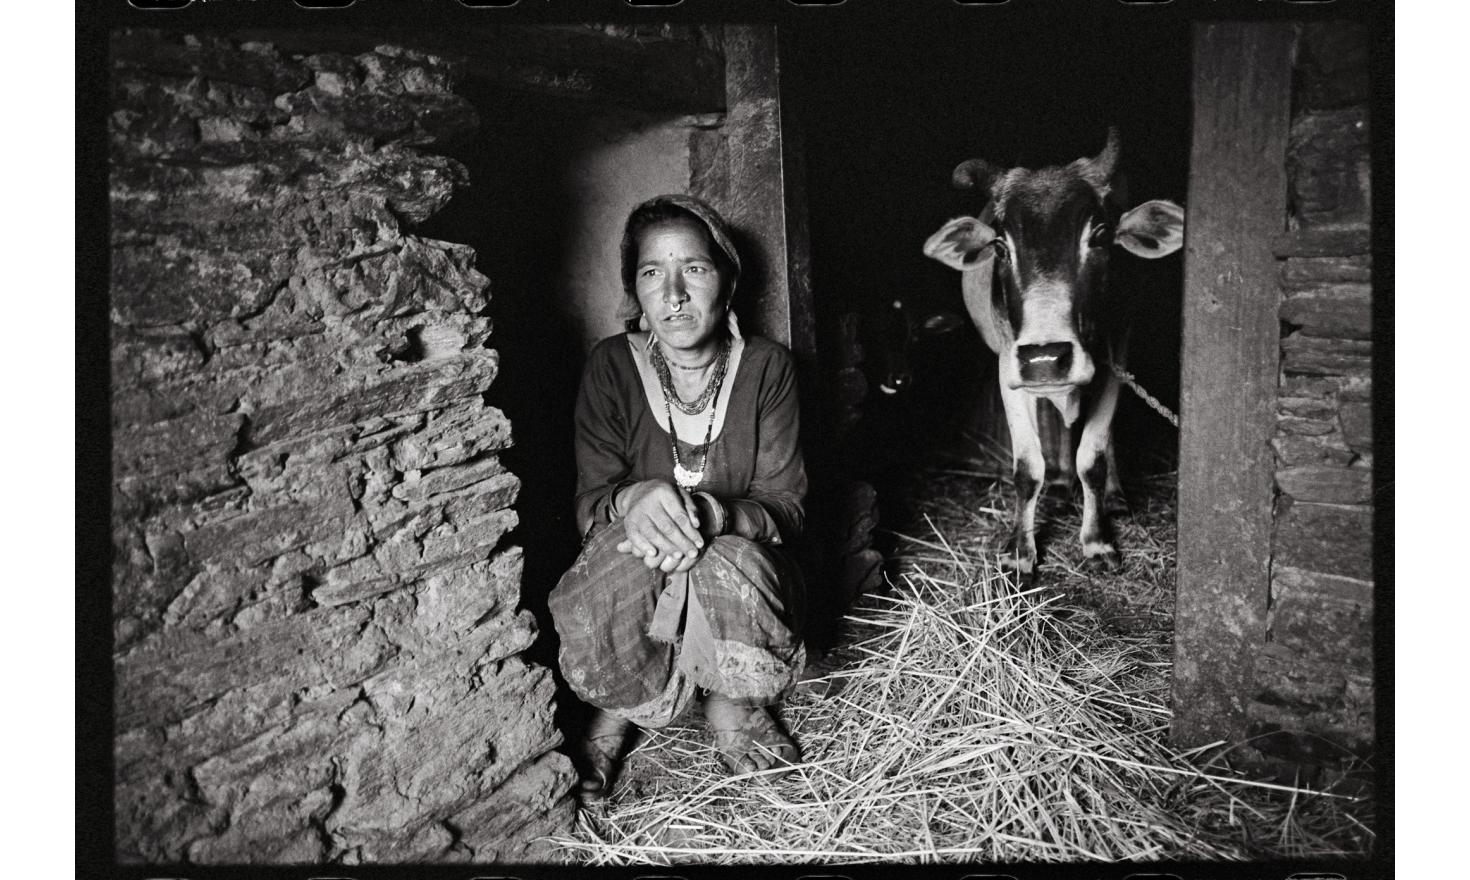 Dhant, Dadeldhura, Nepal. Considered as impure, they would otherwise bring down on the community the wrath of the gods. So like Dhauli, they pass their days in the stable or the sheepfold.